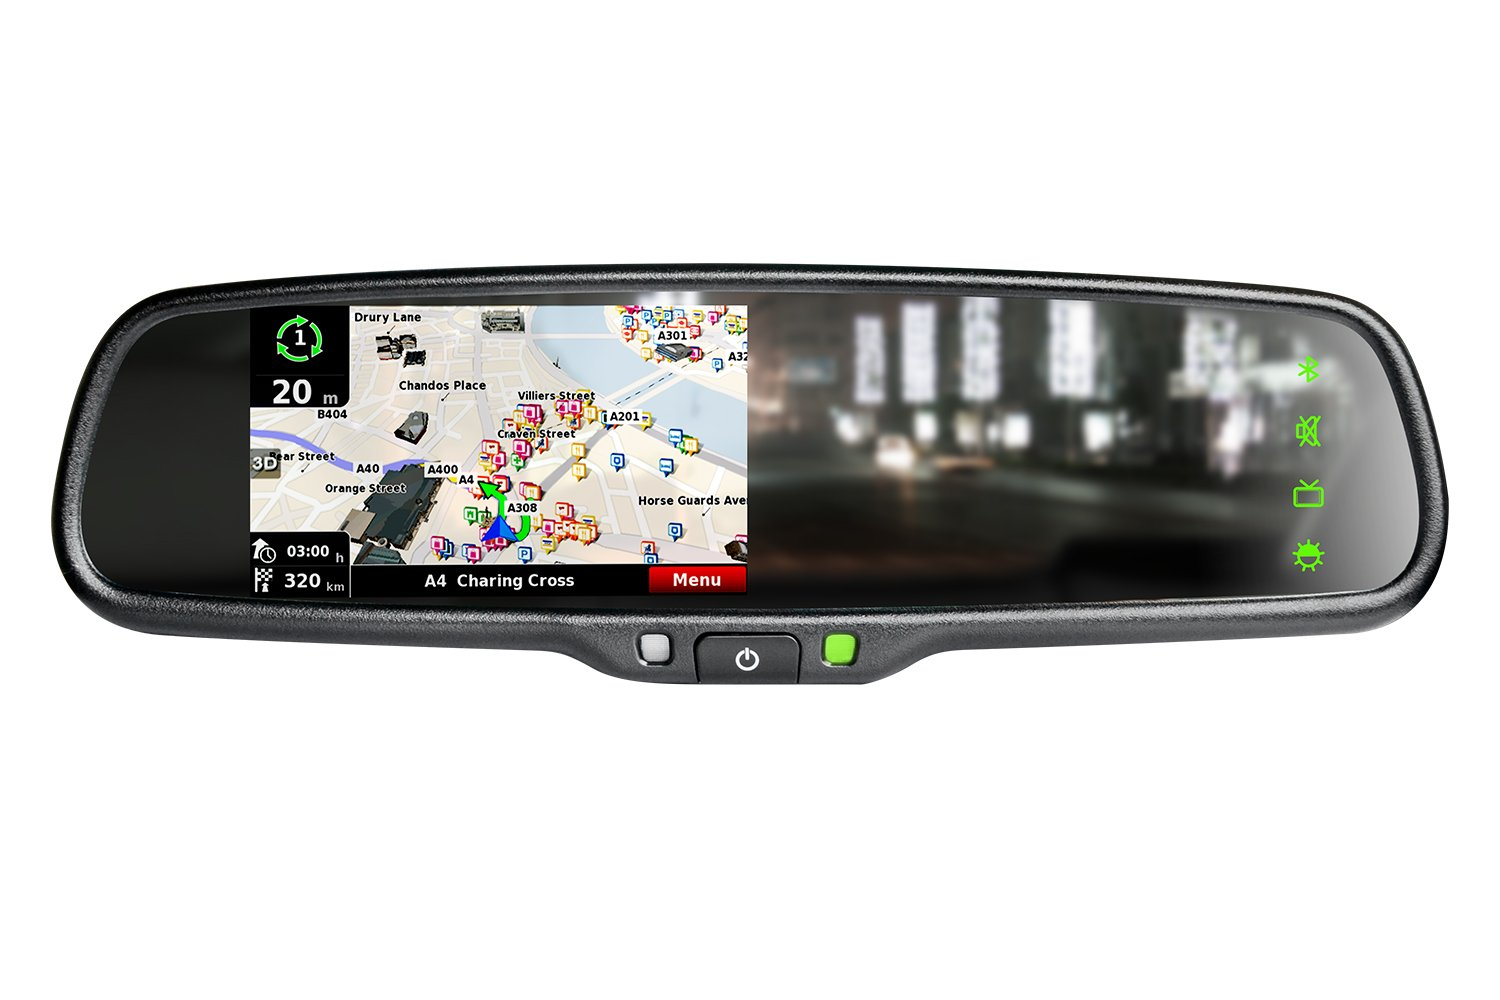 iMirror OEM styled car rear rearview mirror monitor with GPS navigation with iGO map, bluetooth handsfree and backup camera display touch screen